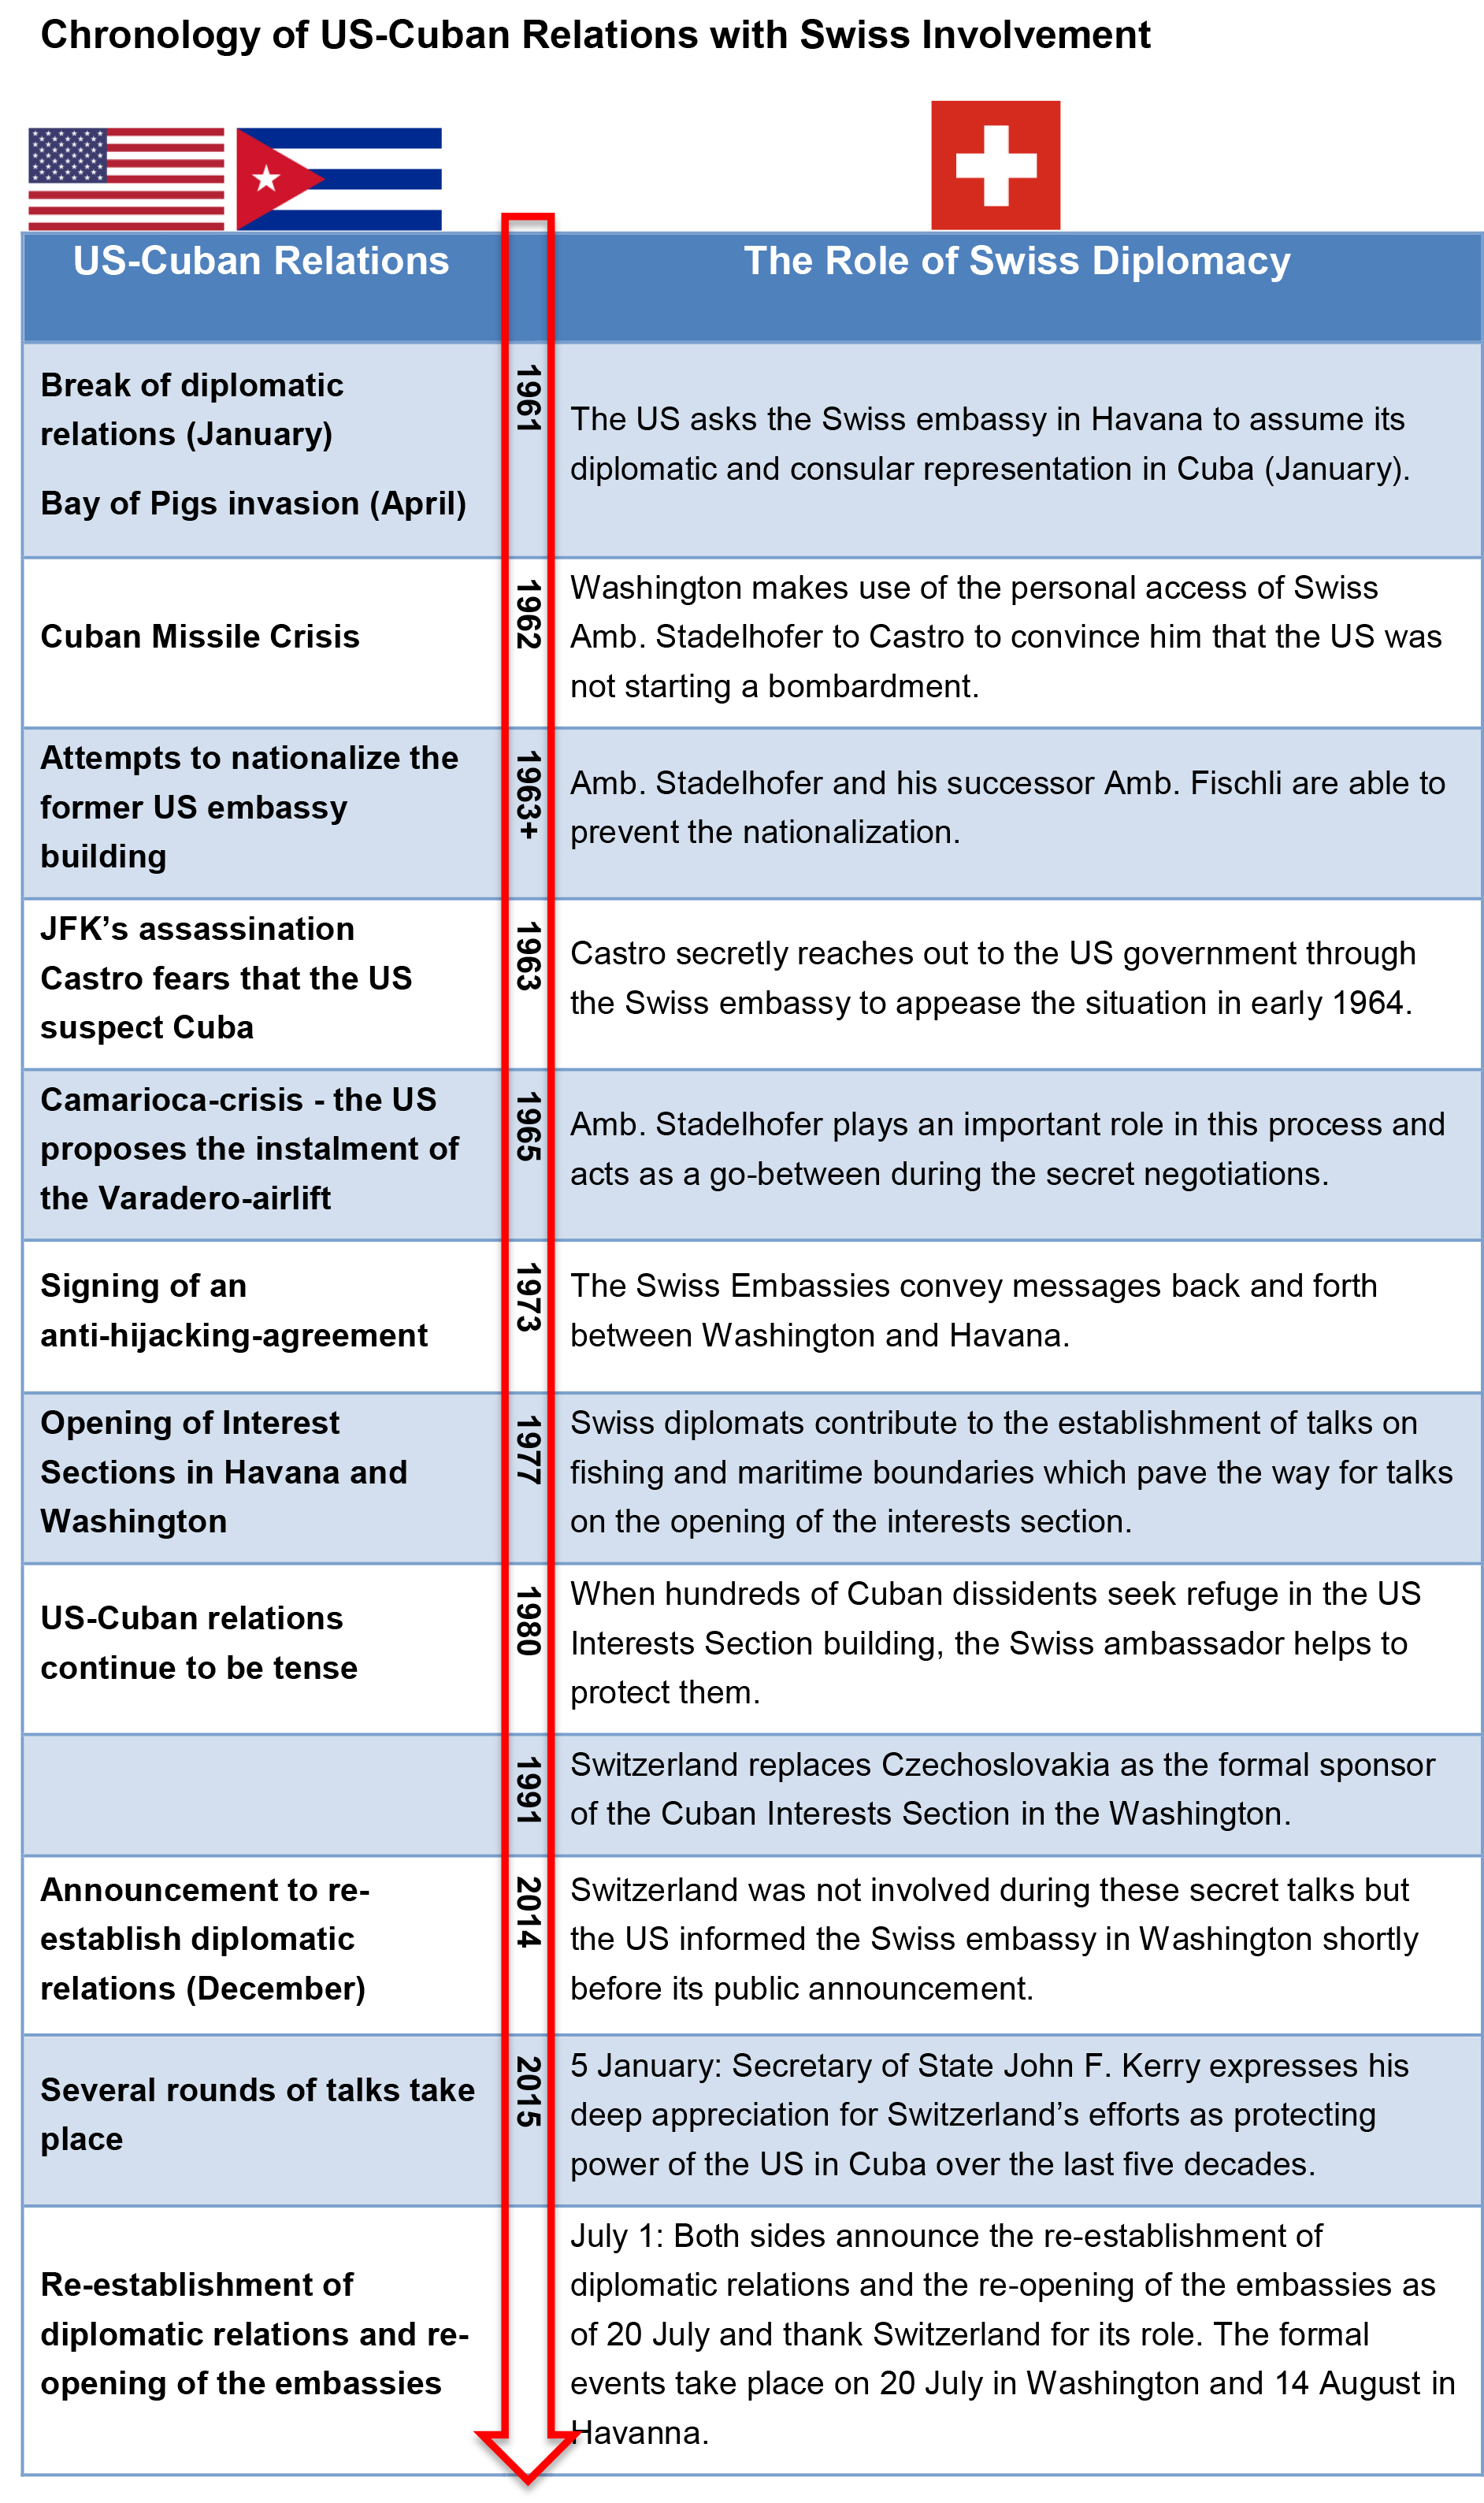 Chronology of US-Cuban Relations with Swiss Involvement